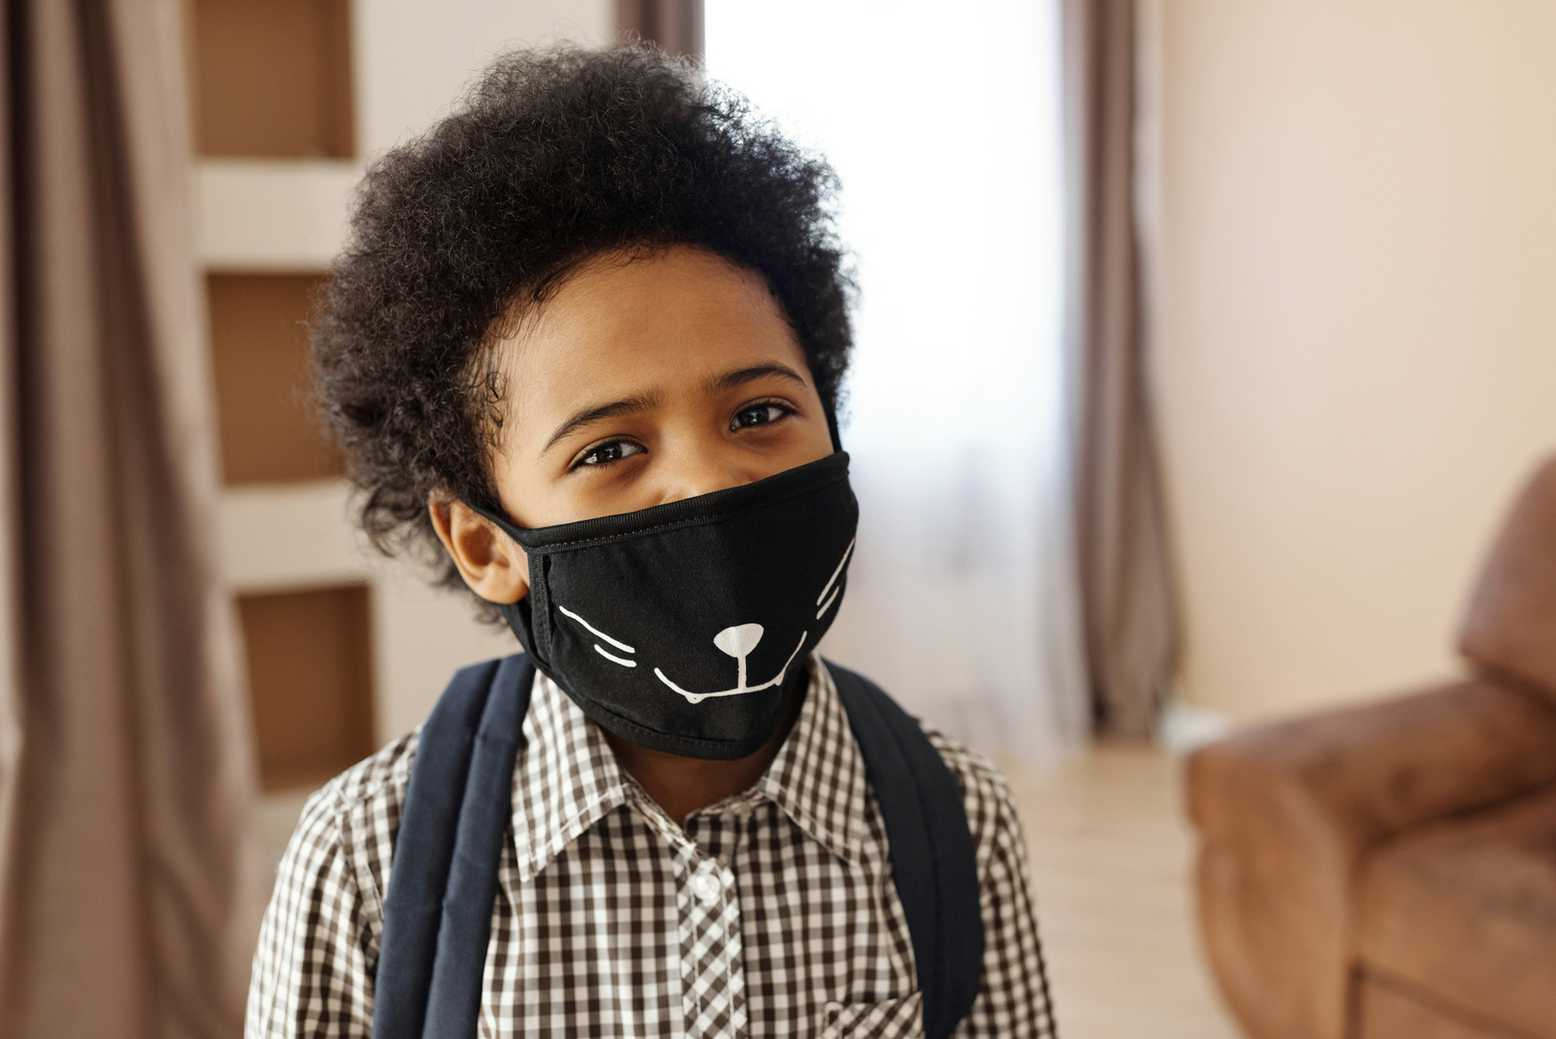 Canva - Little Boy Wearing a Face Mask With a Design.jpg